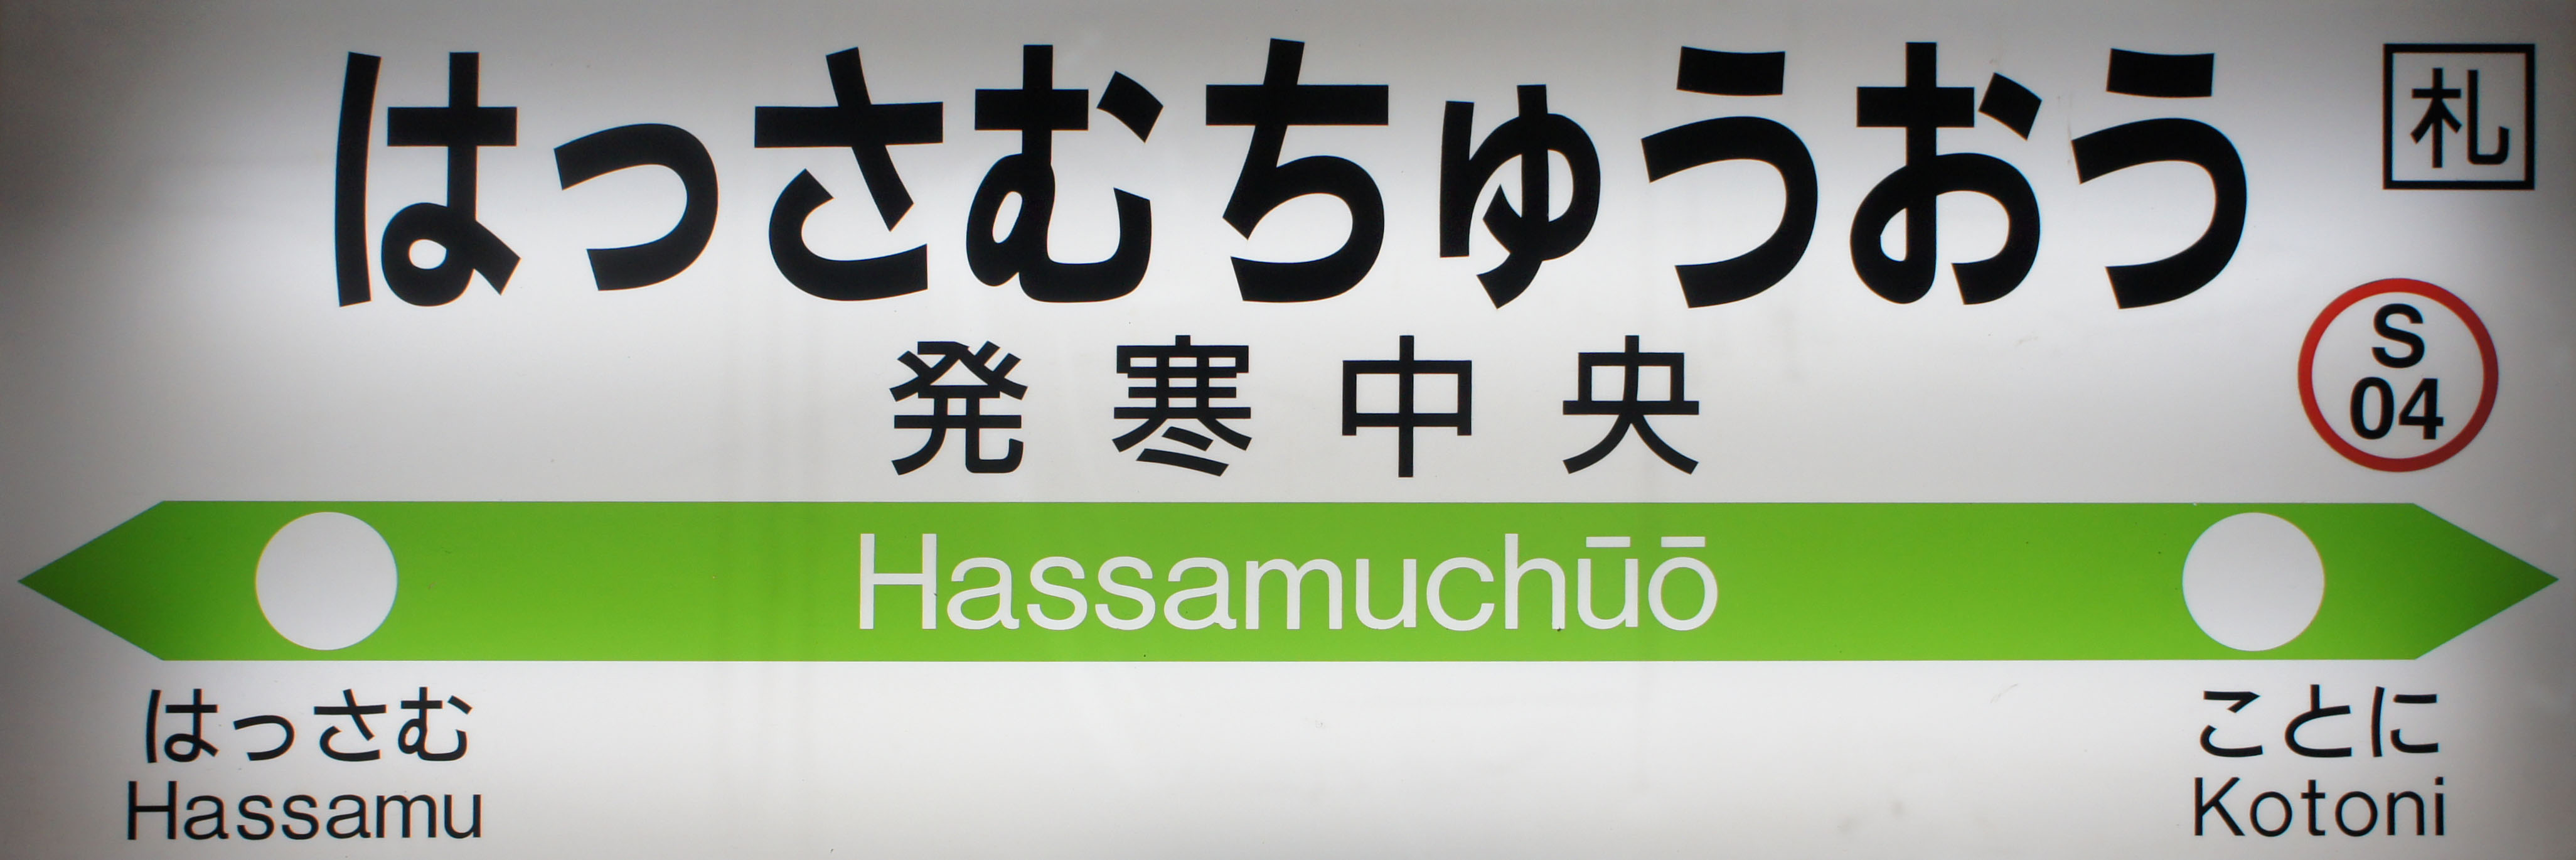 https://upload.wikimedia.org/wikipedia/commons/b/b8/JR_Hakodate-Main-Line_Hassamu-Chuo_Station-name_signboards.jpg